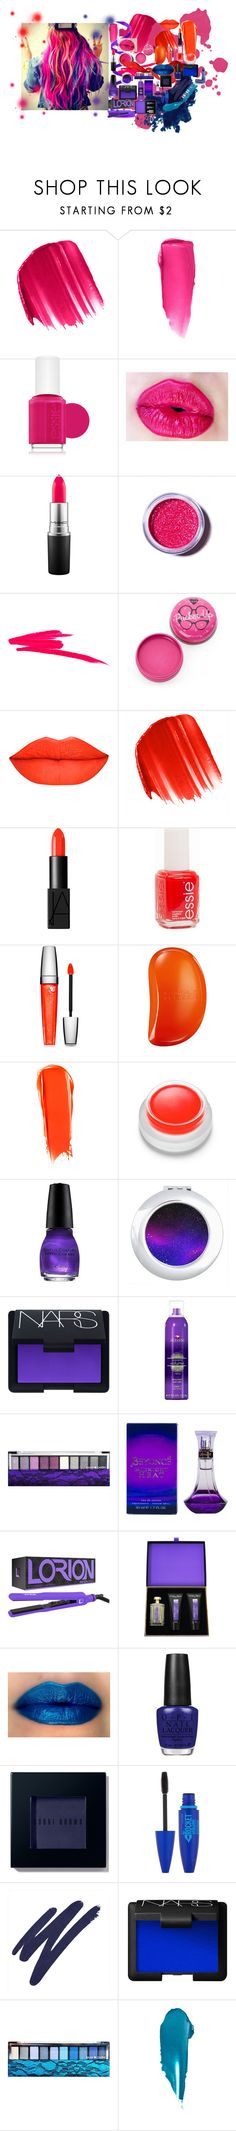 """""""Colors"""" by katiecutie31 on Polyvore featuring beauty, Urban Decay, NYX, Essie, MAC Cosmetics, Lime Crime, NARS Cosmetics, Lancôme, Tangle Teezer and rms beauty"""